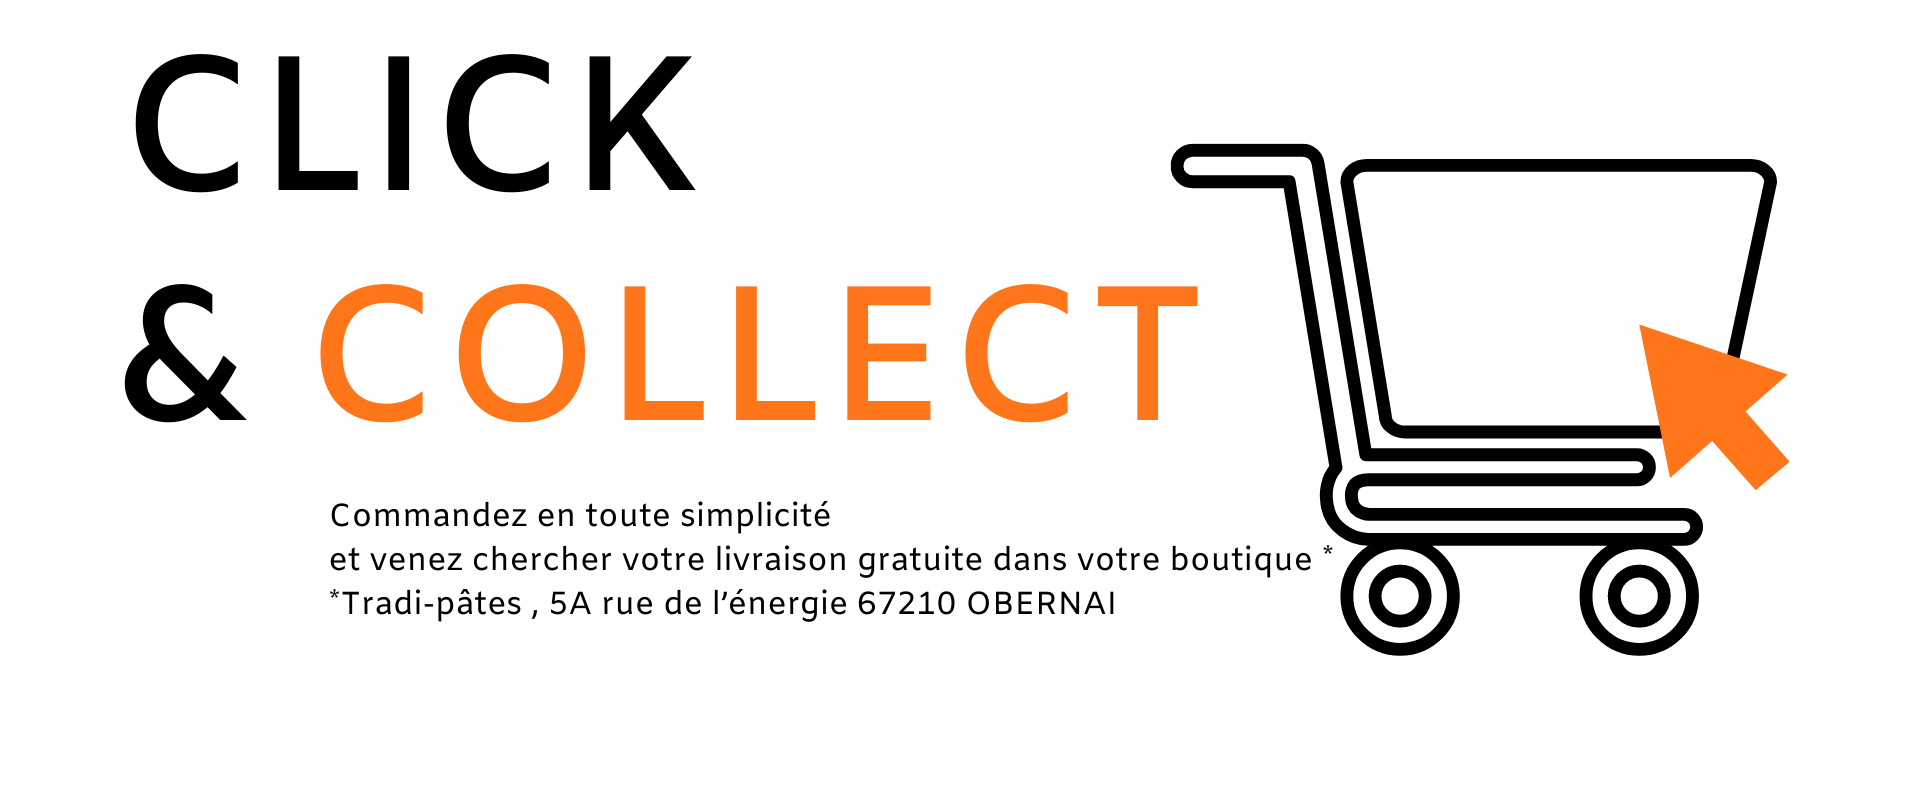 Click & collect tradi-pates